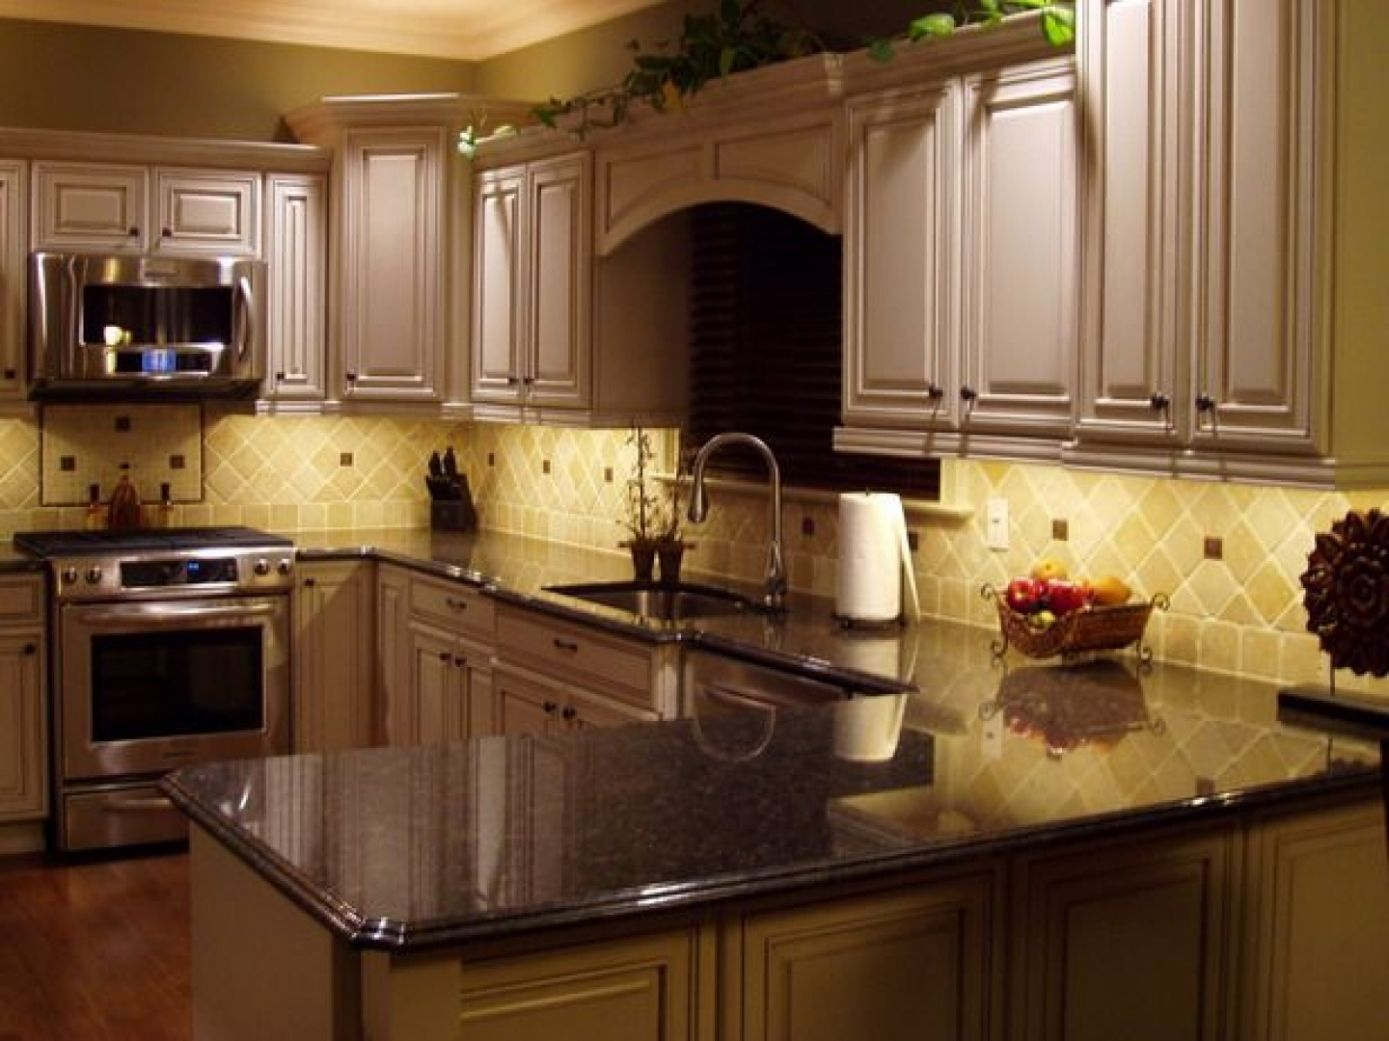 2019 Small L Shaped Kitchen Remodel Ideas Favorite Interior Paint Colors Check More At